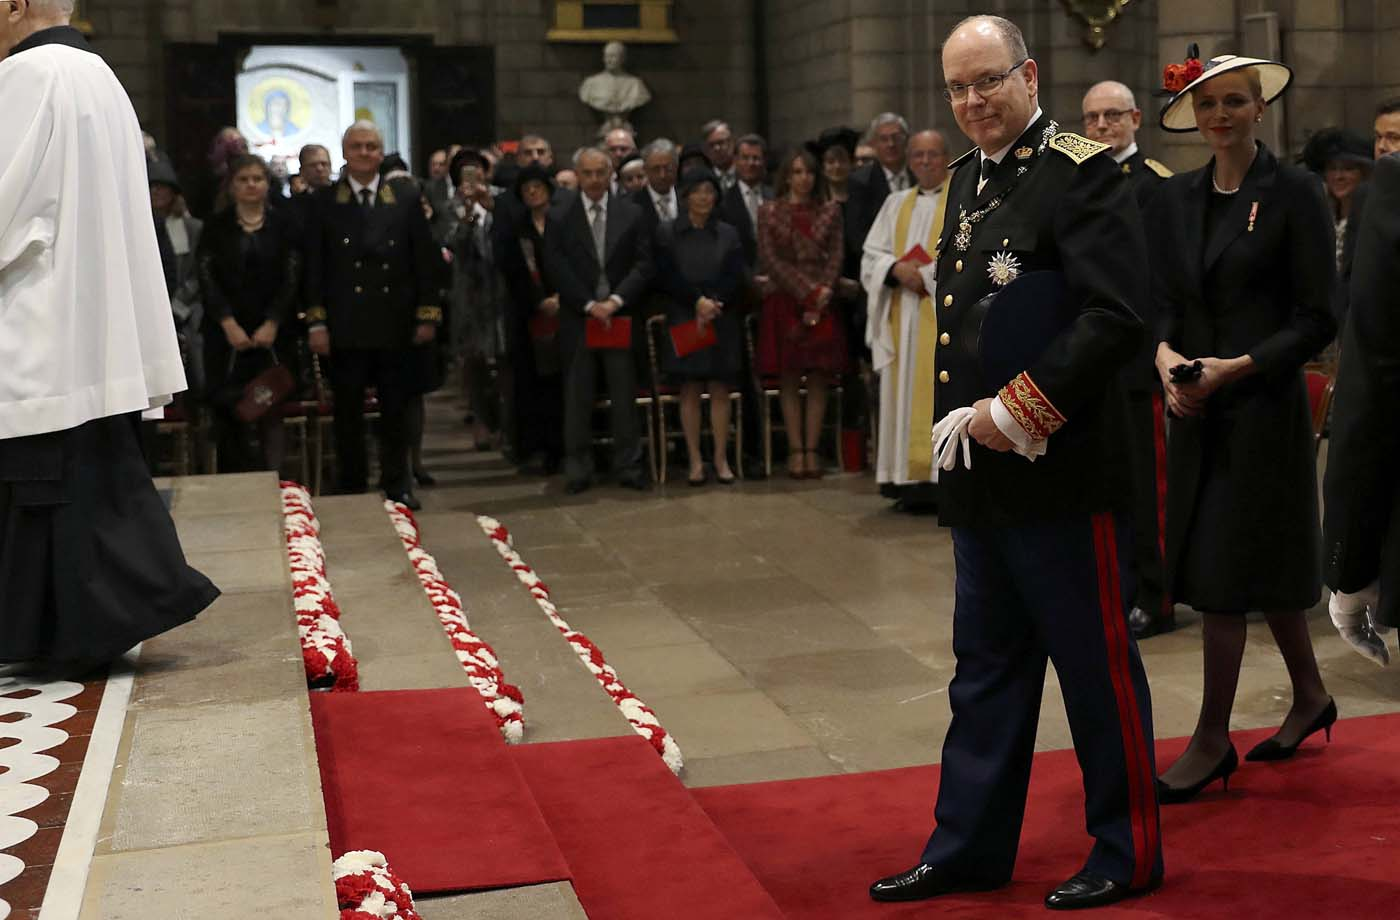 Prince Albert II of Monaco and Princess Charlene arrive for a mass at the Saint Nicholas Cathedral during the celebrations marking Monaco's National Day, on November 19, 2016 in Monaco. REUTERS/Valery Hache/Pool